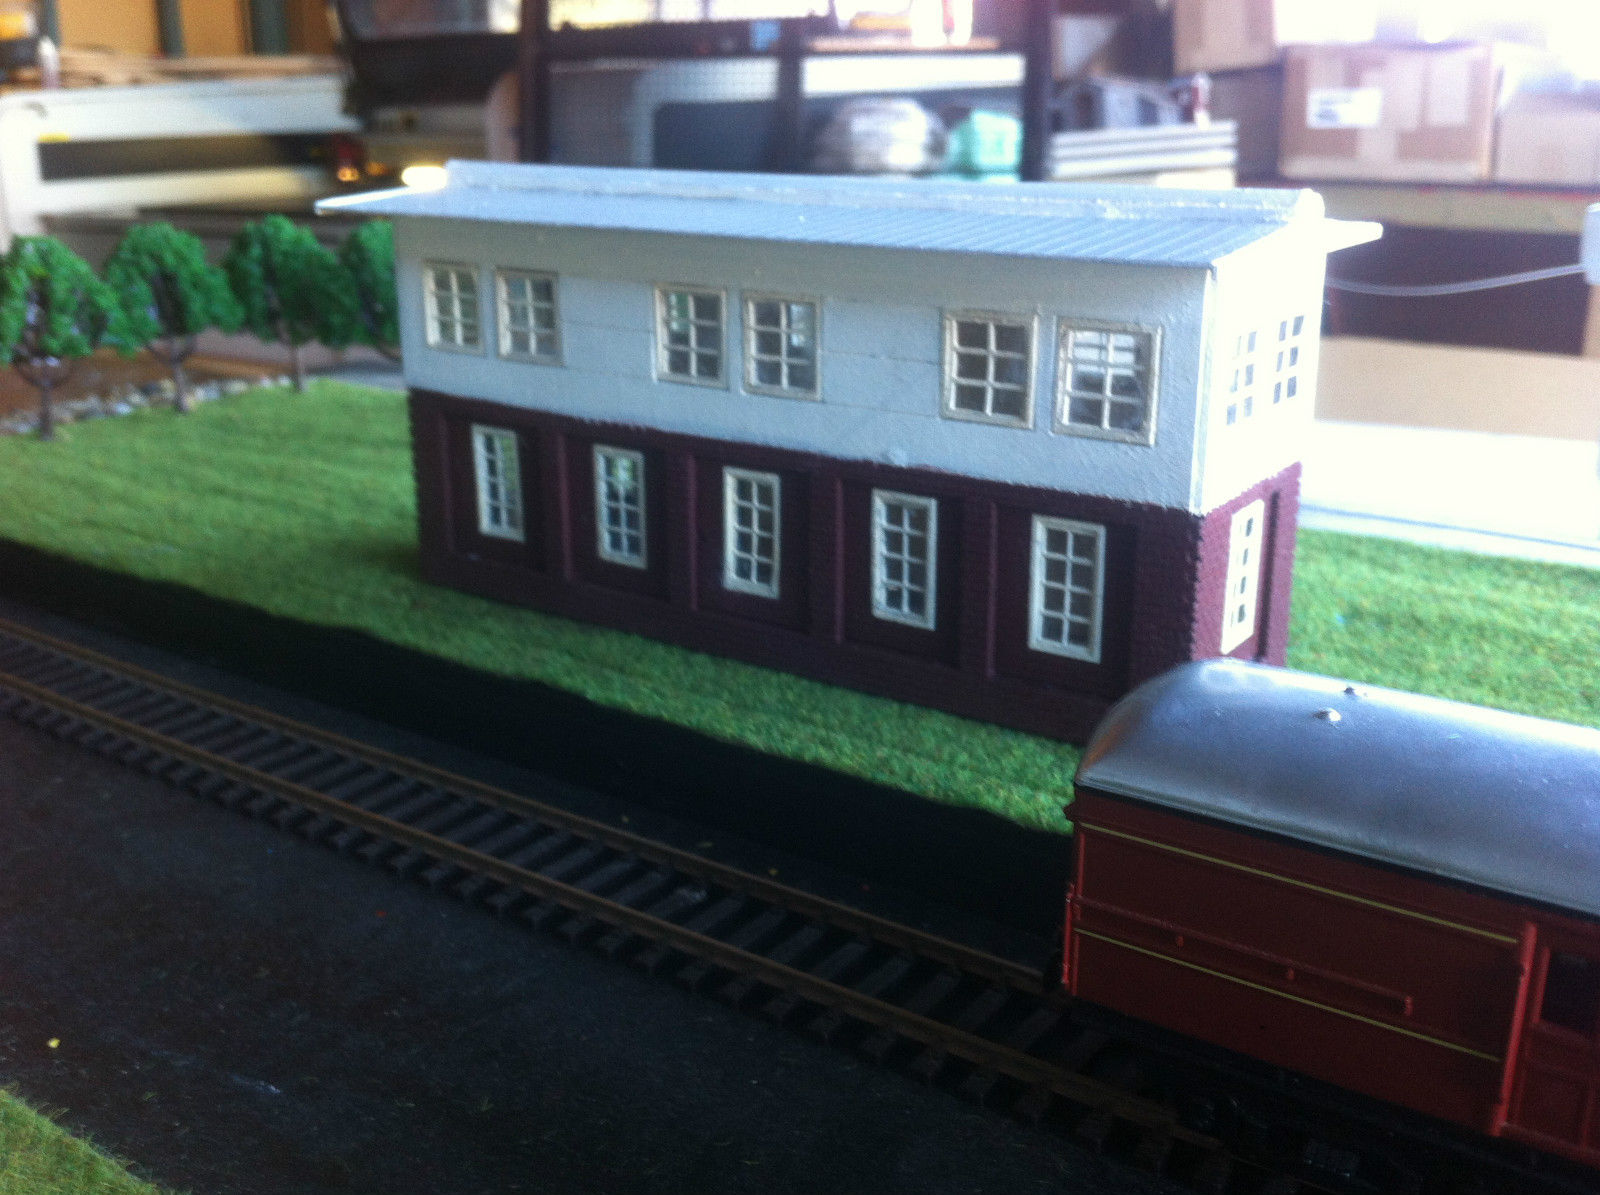 HO scale building kit Darling Habour signal house